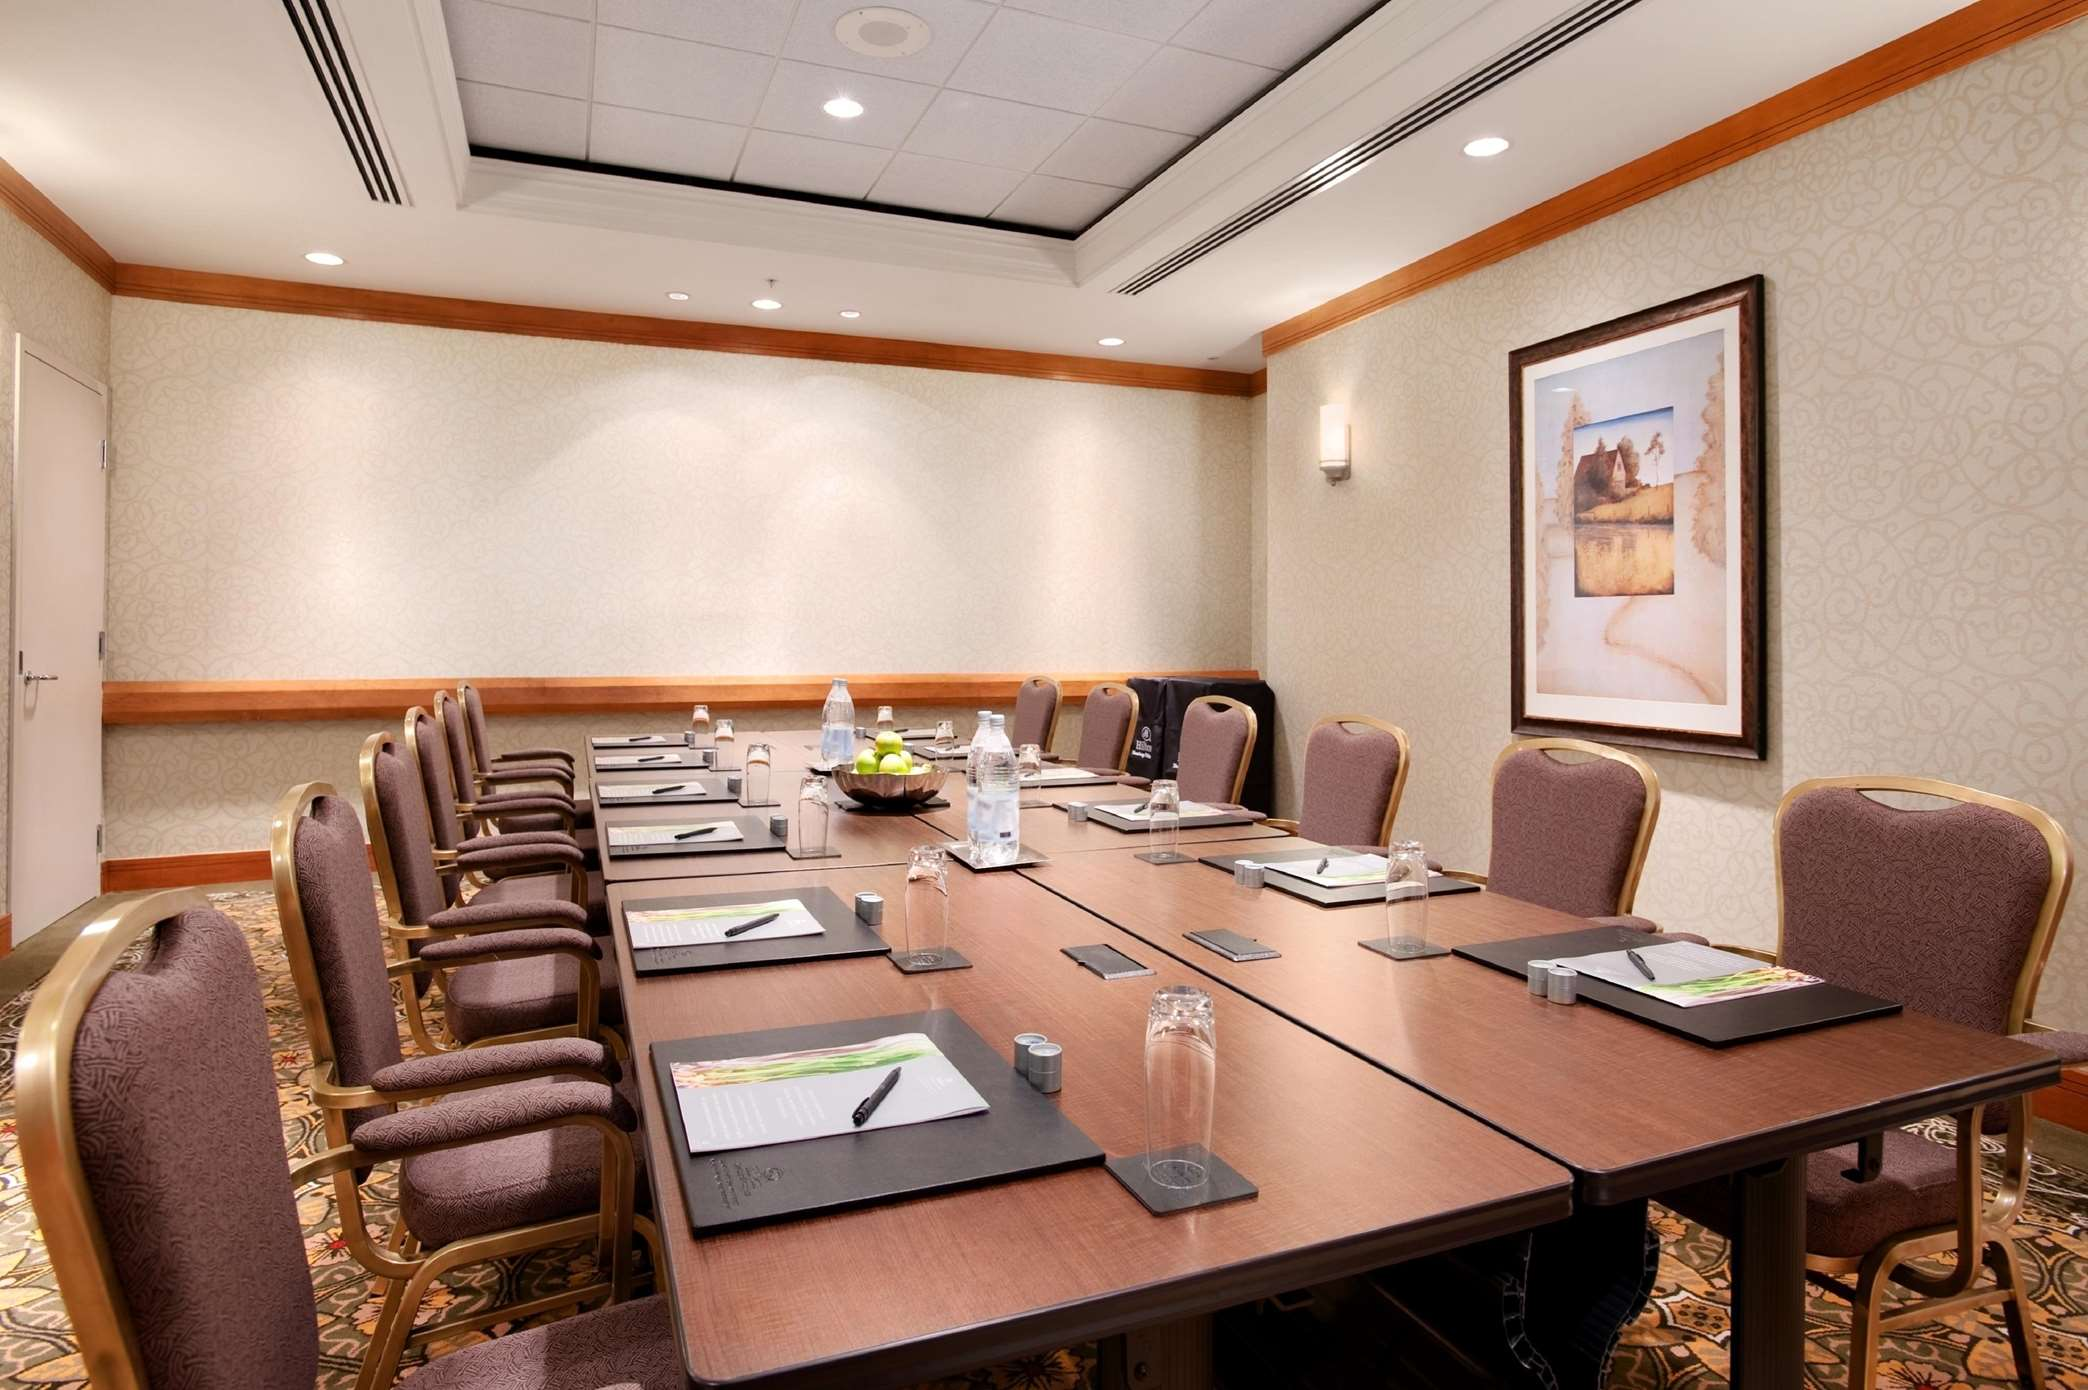 Hilton Vancouver Metrotown in Burnaby: Chandon Room